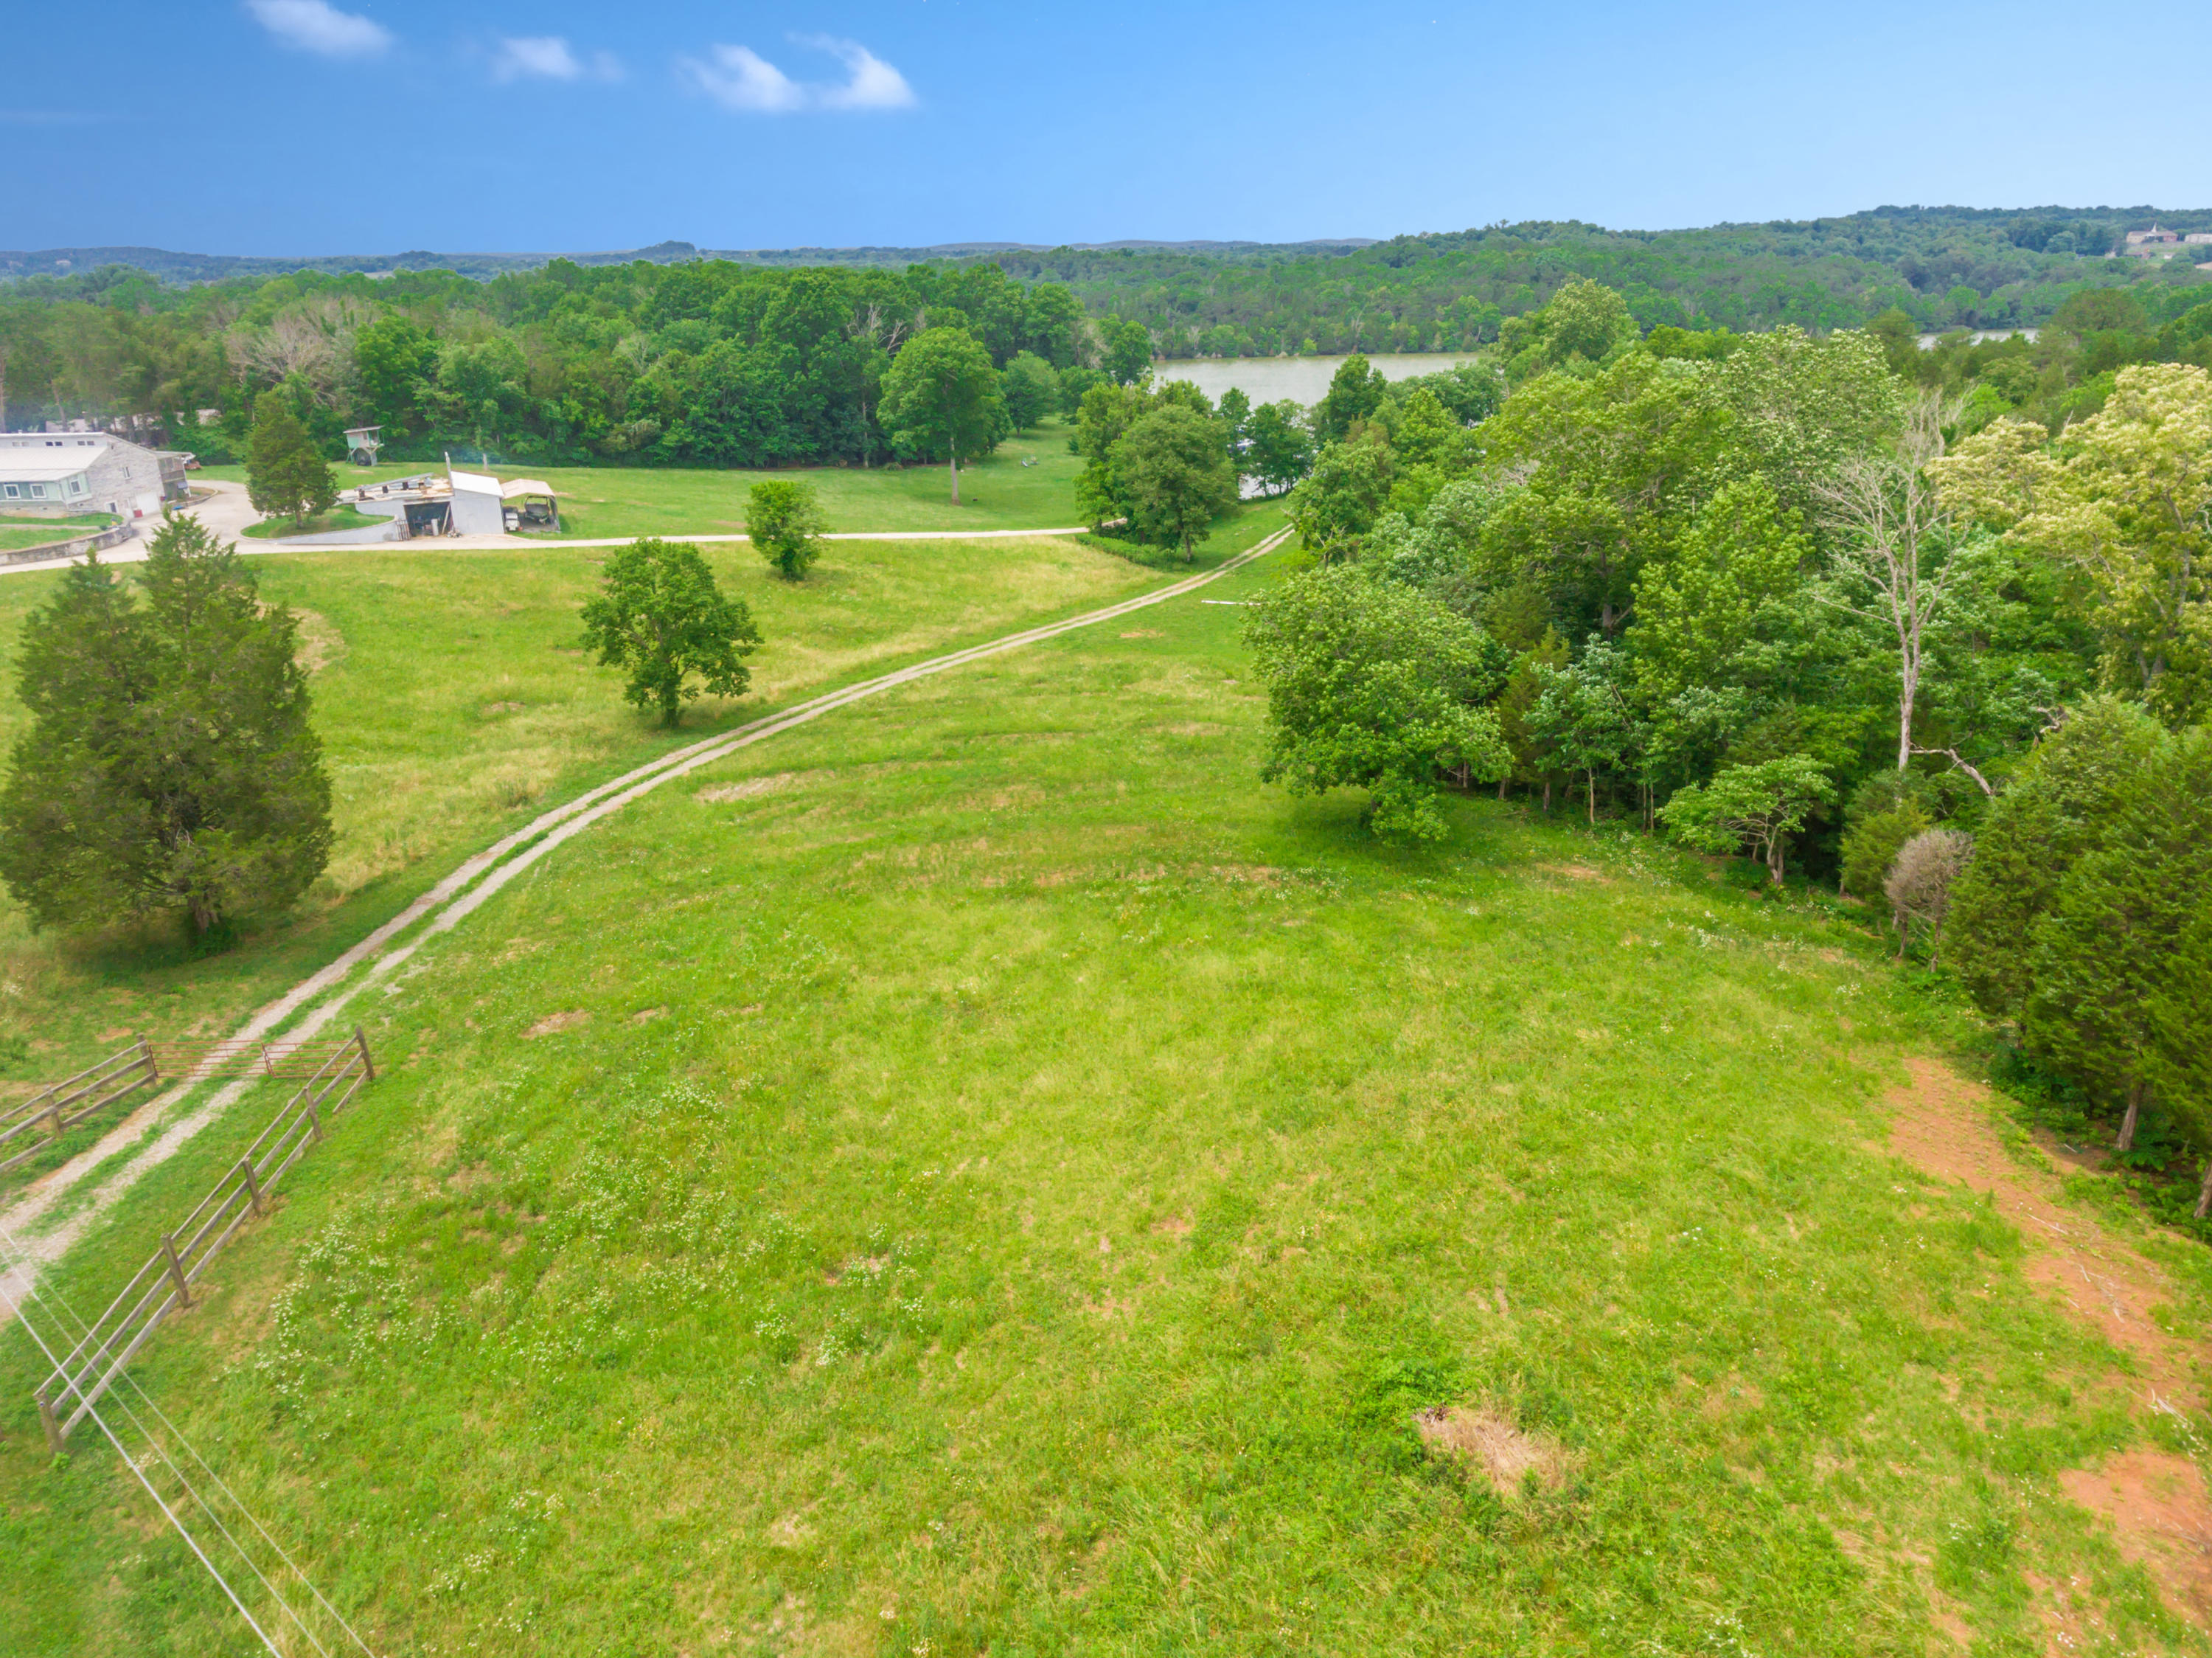 3054 Marmore Rd: